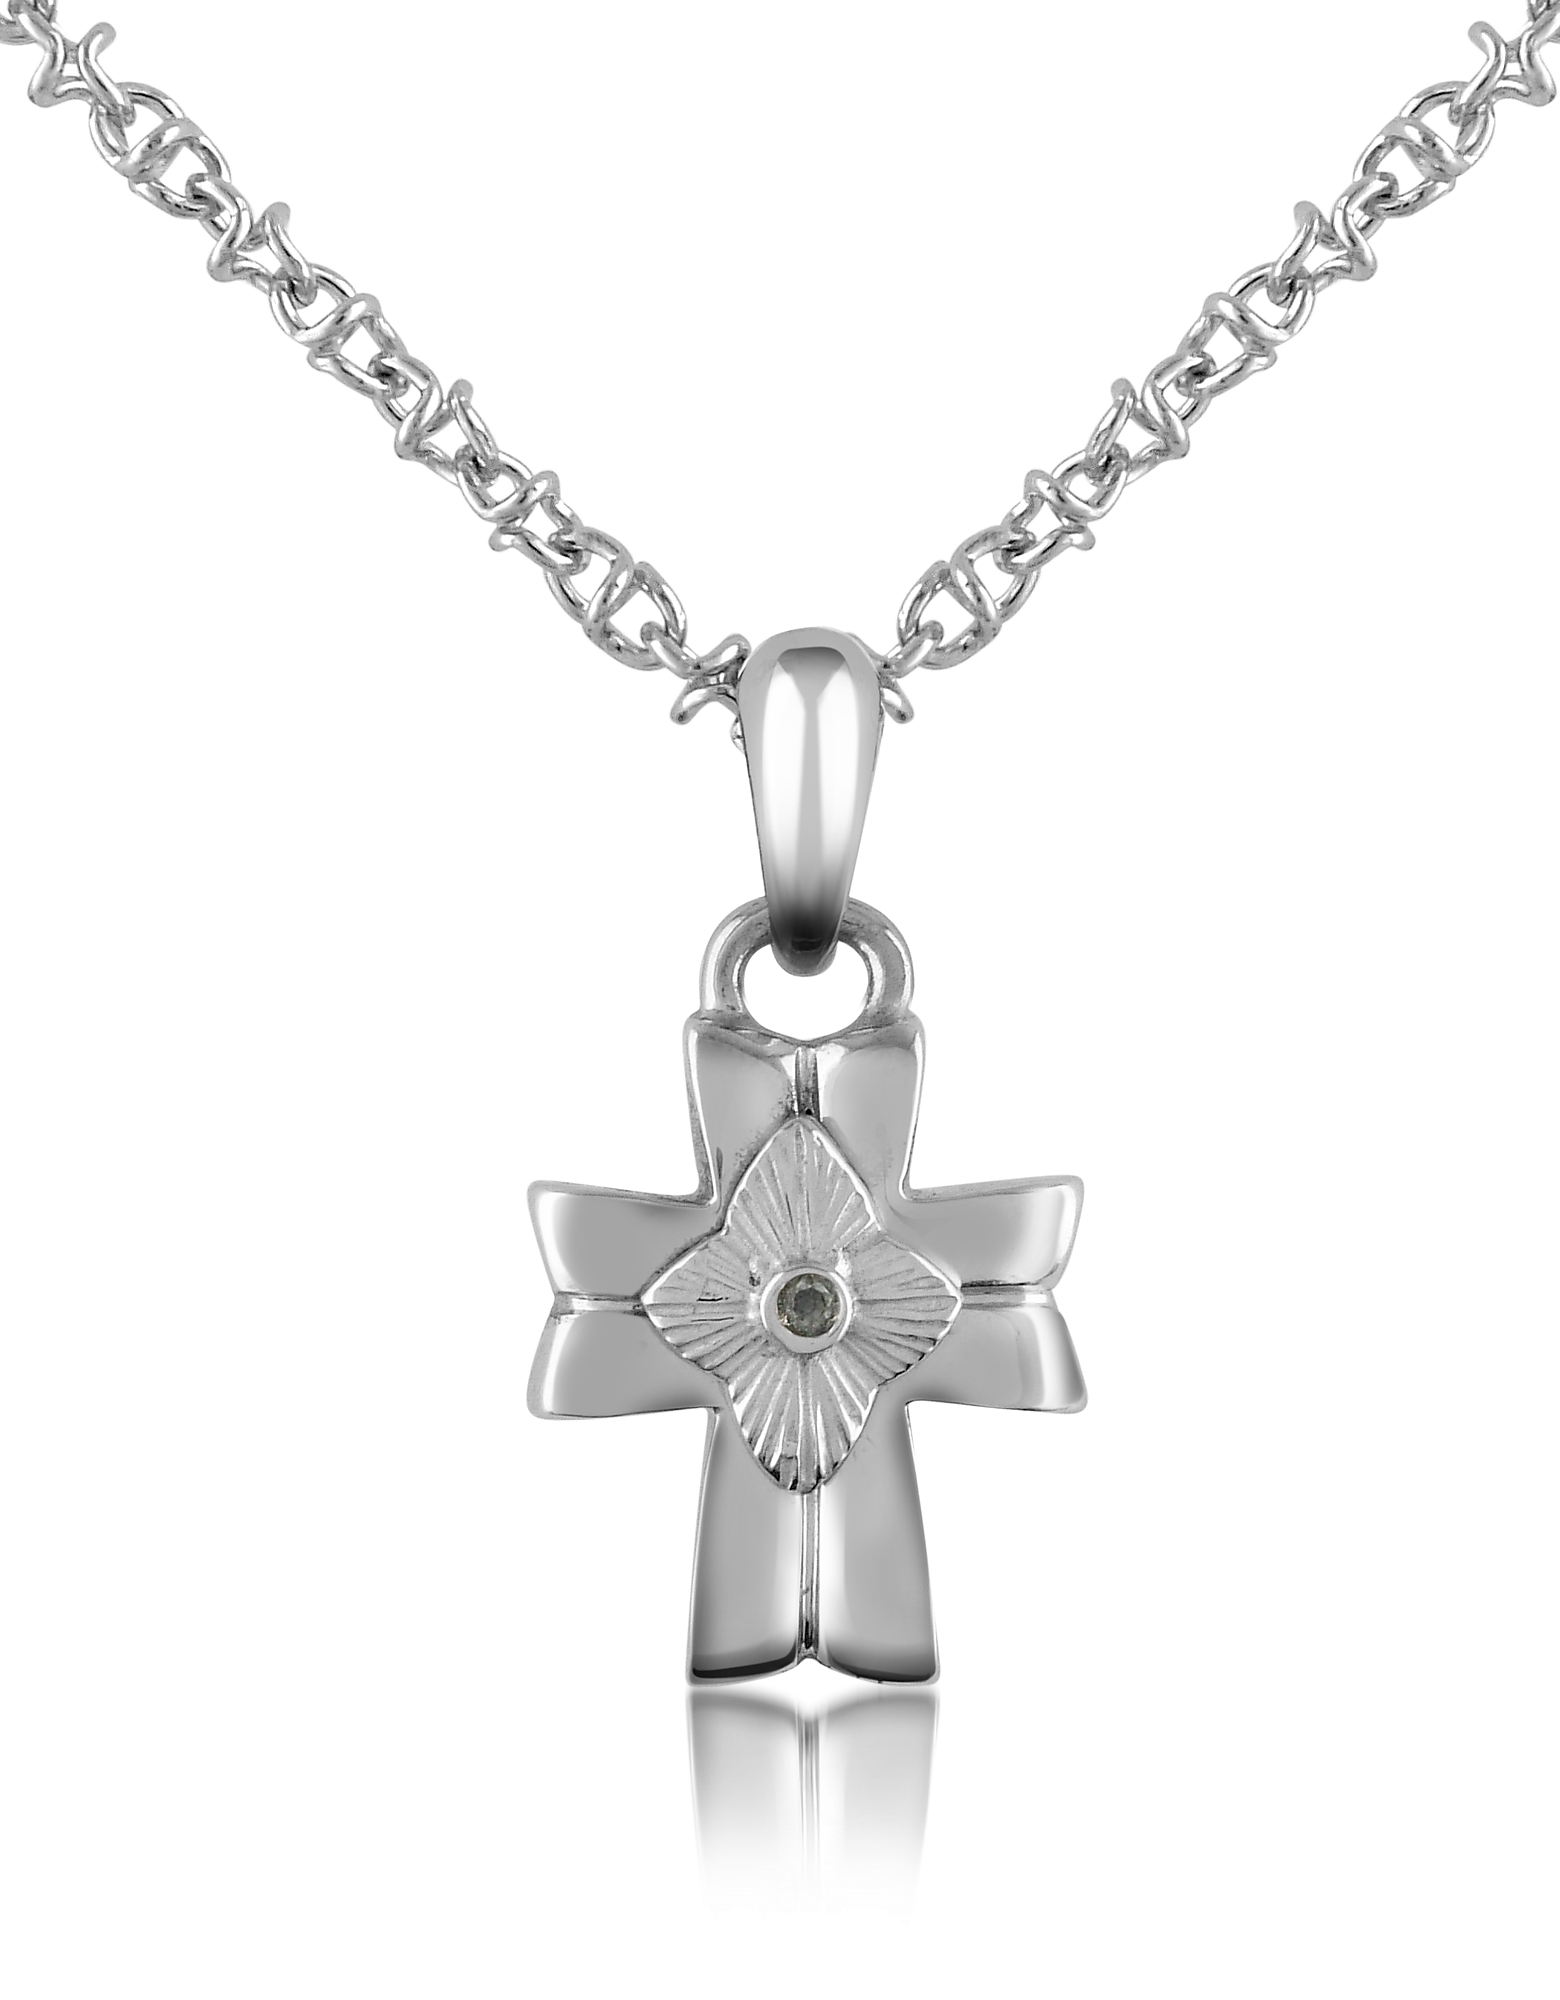 Forzieri Designer Men's Necklaces, Diamond and Stainless Steel Cross Pendant Necklace